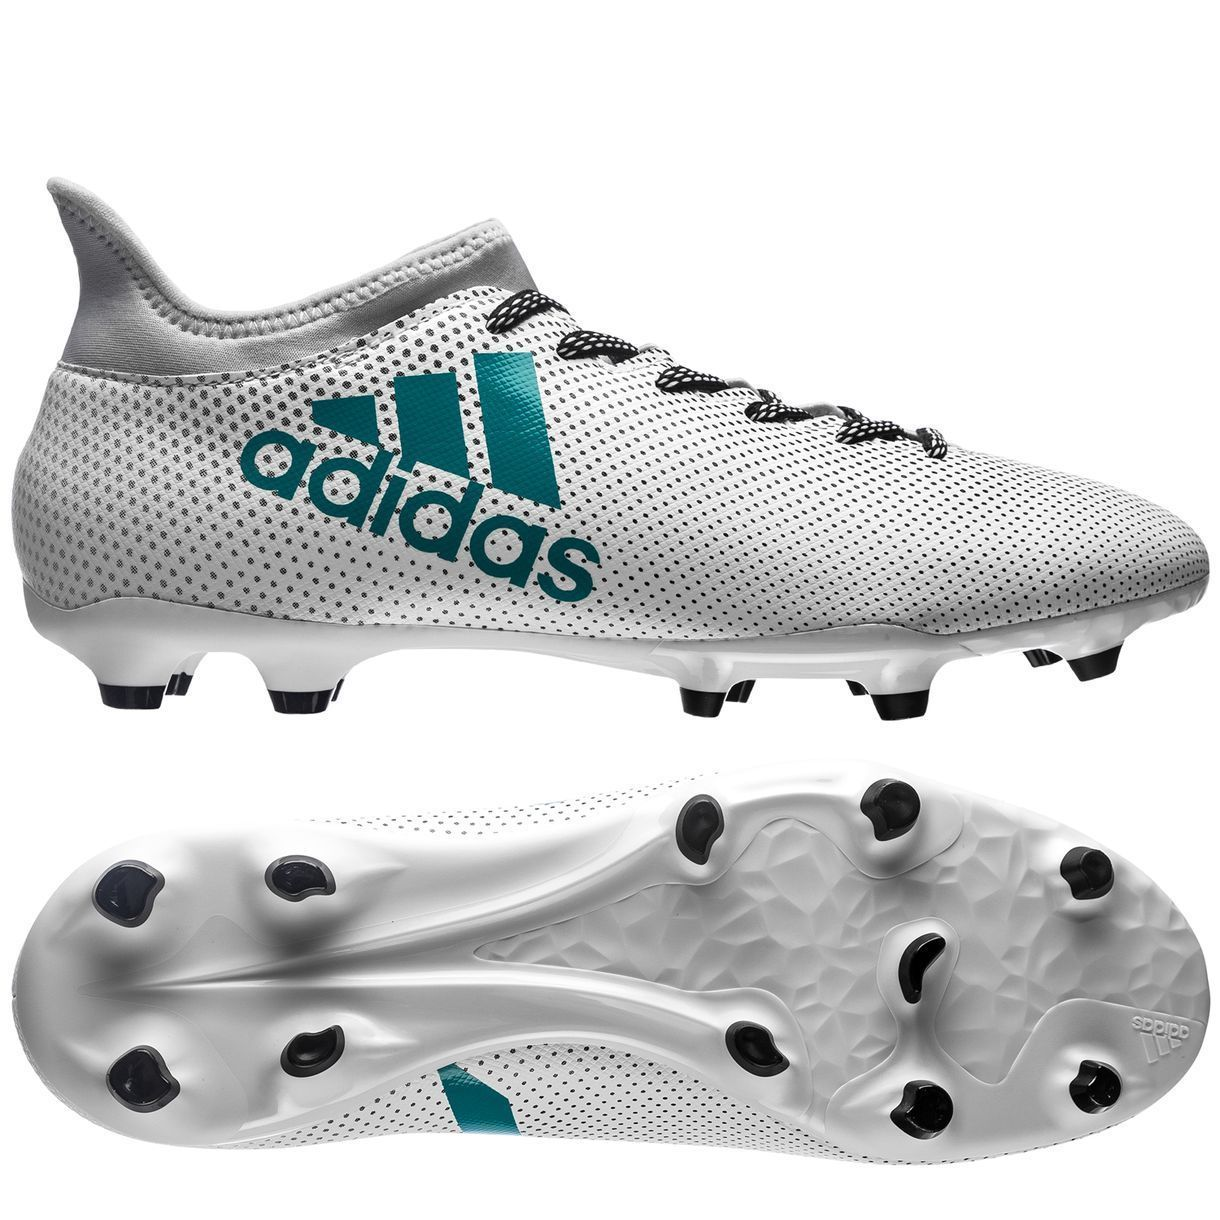 78177ed2aad adidas X 17.3 FG 2017 Soccer Shoes Cleats White   Turquoise Brand ...